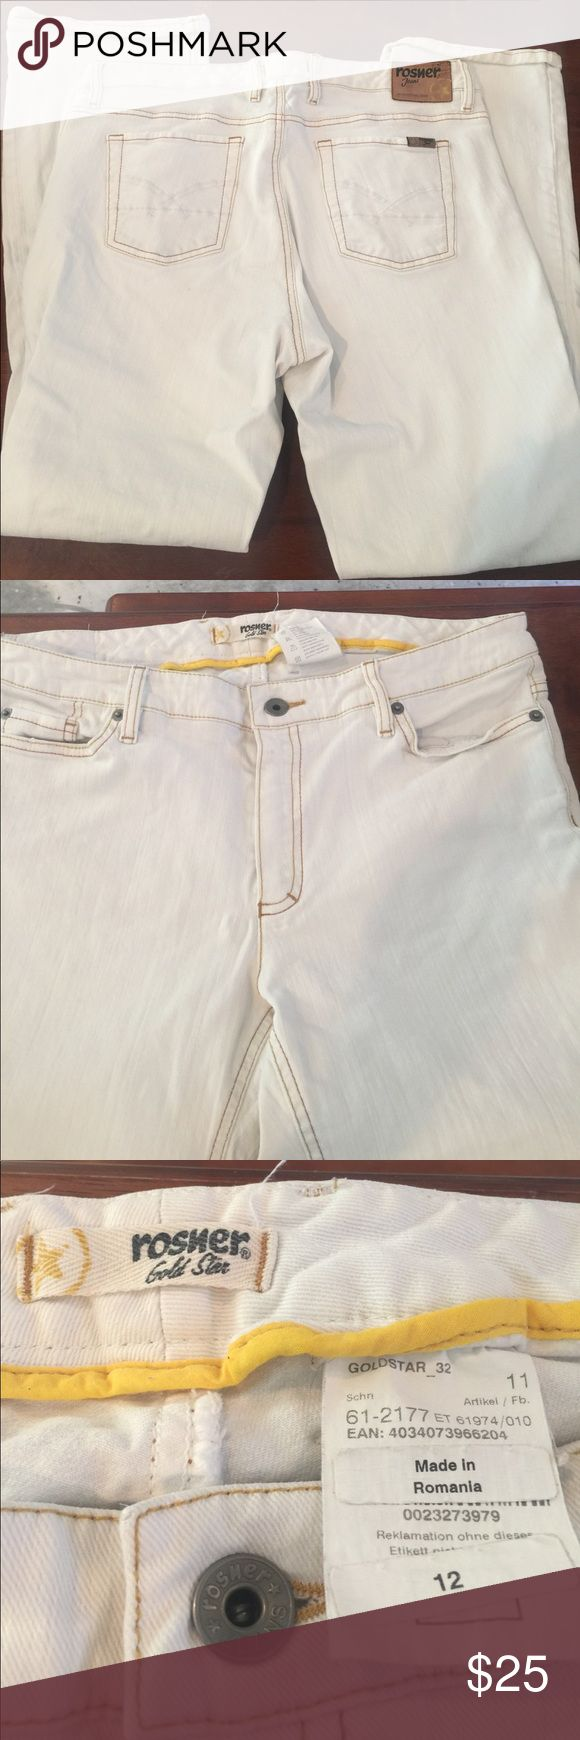 Rosner white jeans White Rosner jeans size 12. No fraying on the hems. Rosner Jeans Boot Cut